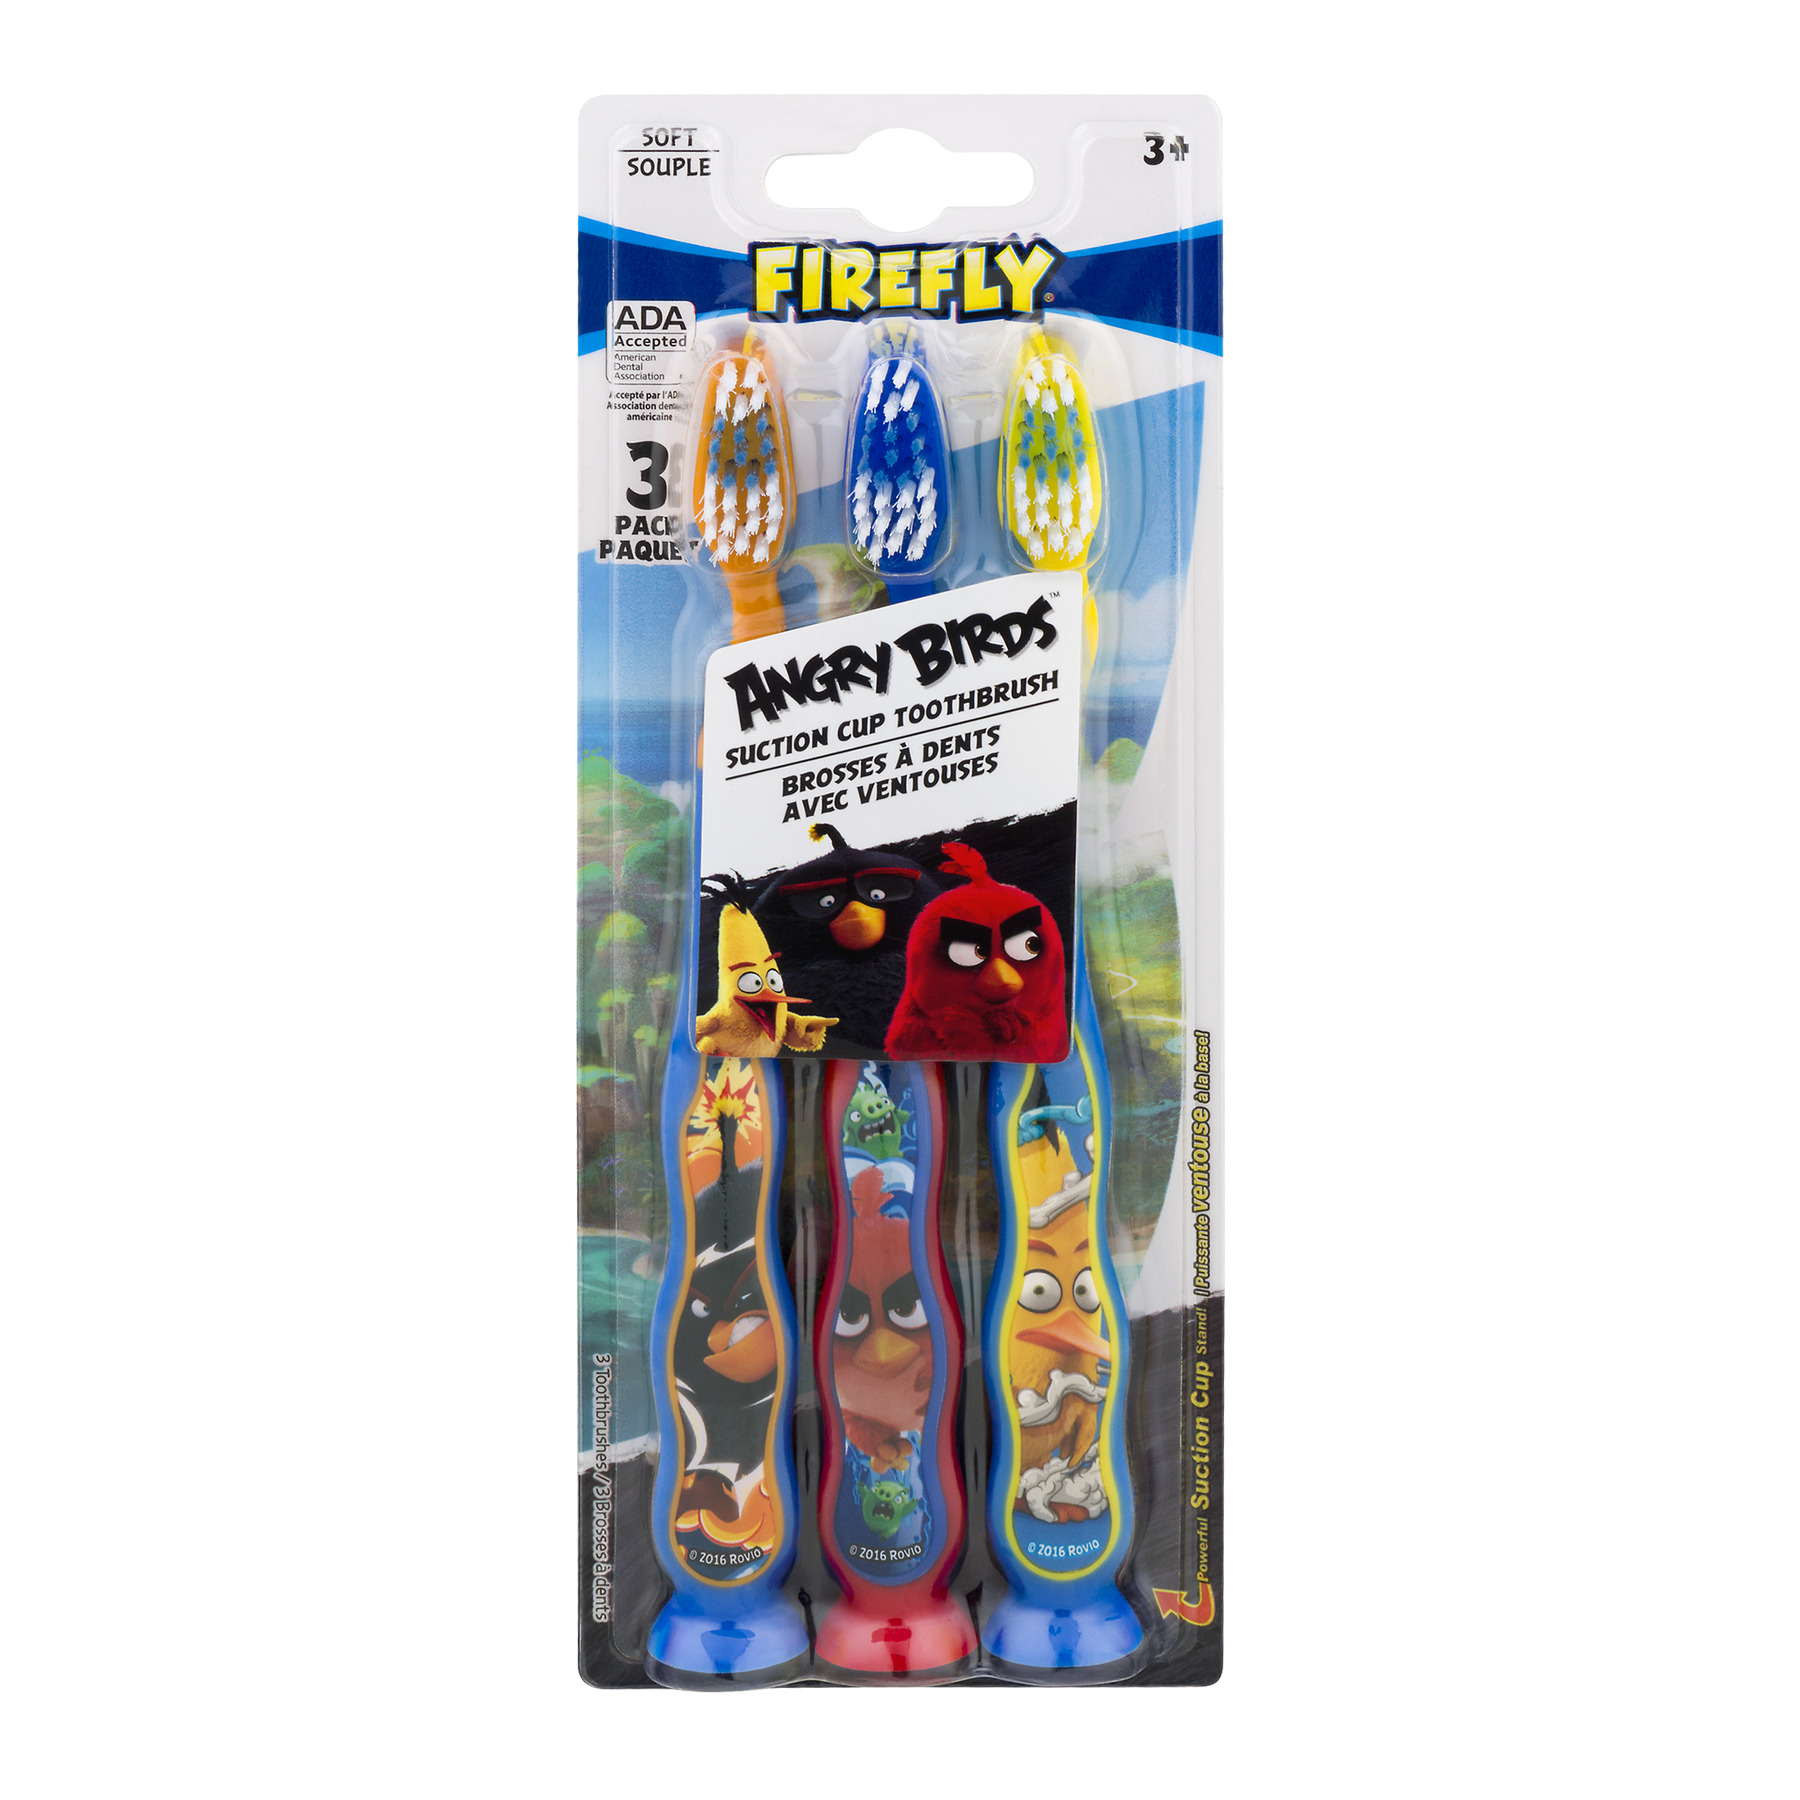 Angry Birds Toothbrushes Firefly Soft, 3.0 PACK